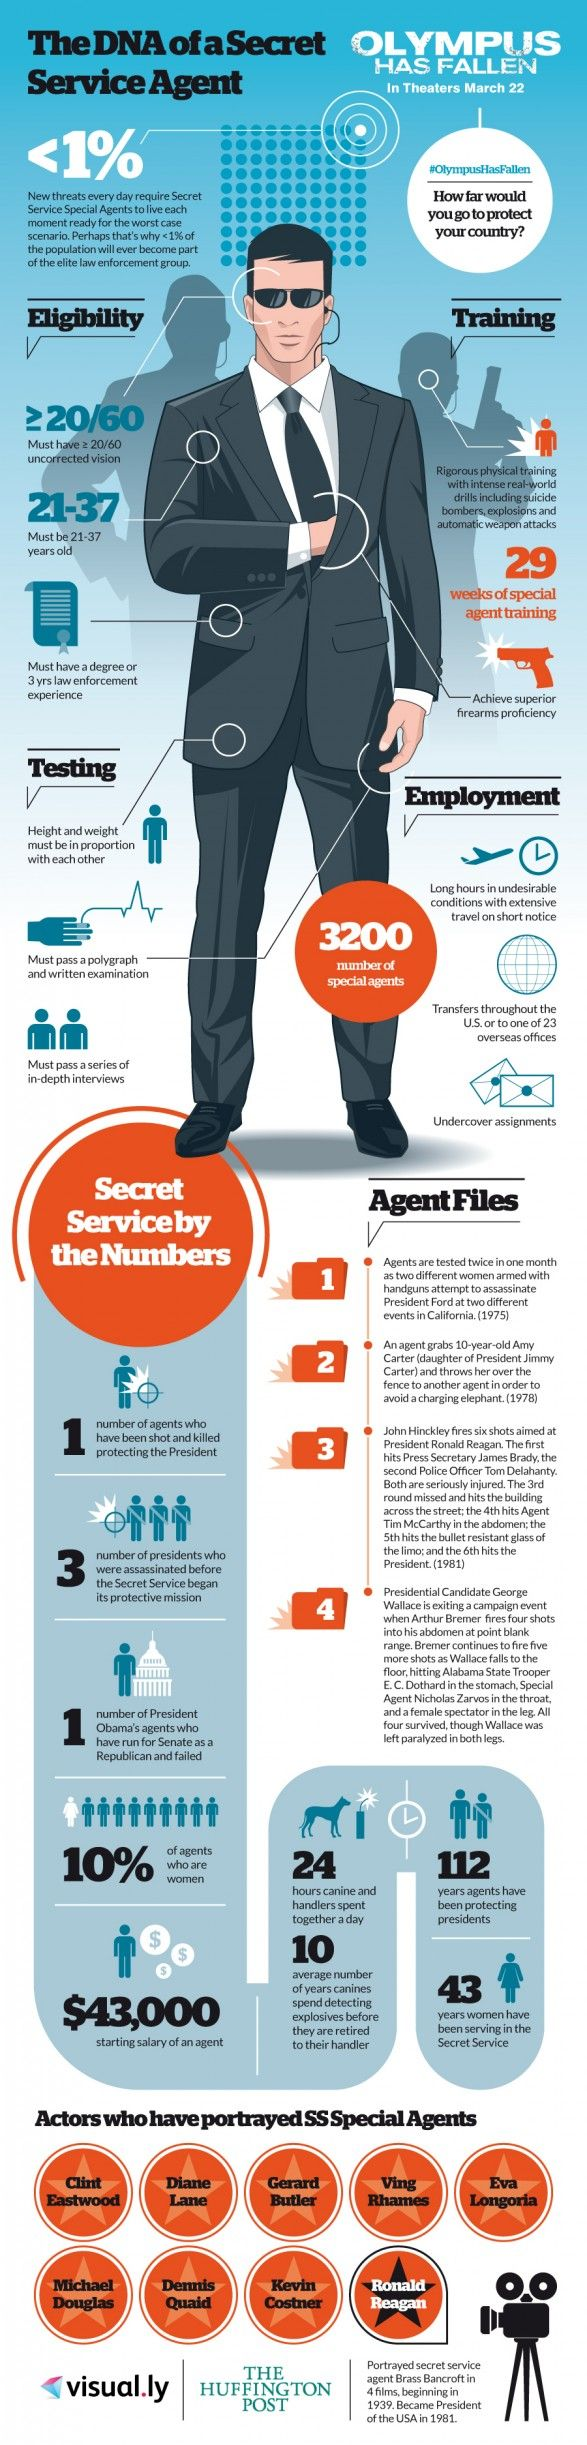 Think You Have What it Takes to be a Secret Service Agent ...